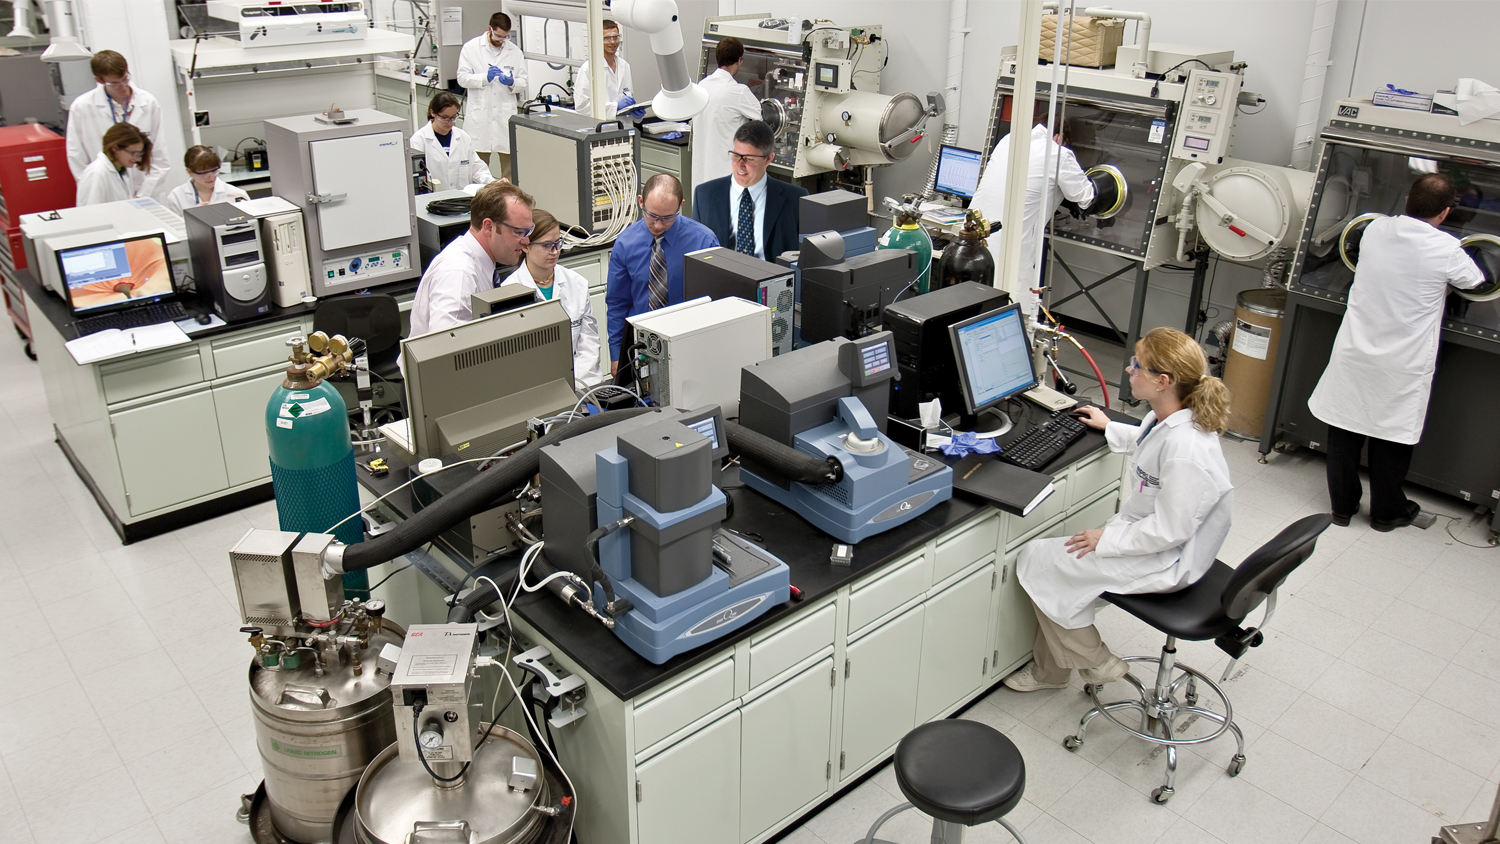 Scientists and researchers working in a research lab